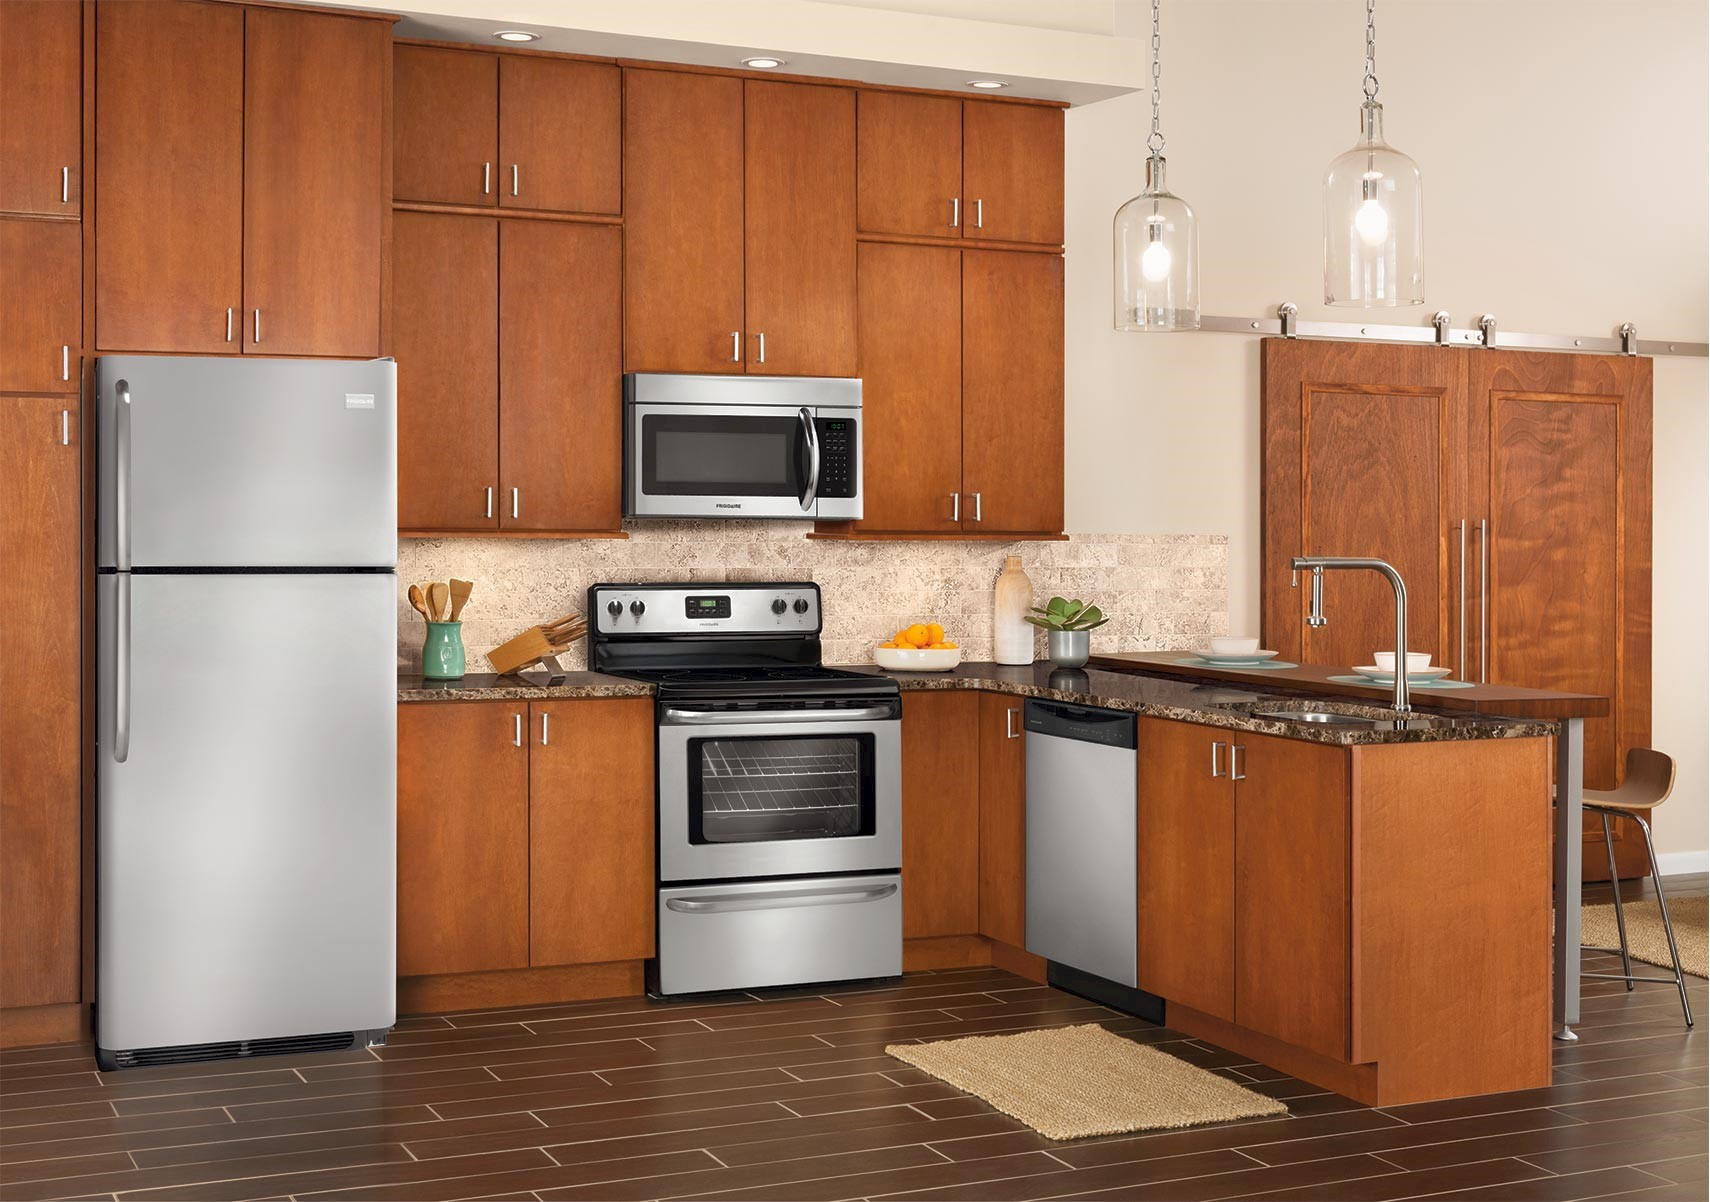 lacks | frigidaire stainless steel kitchen appliance package with